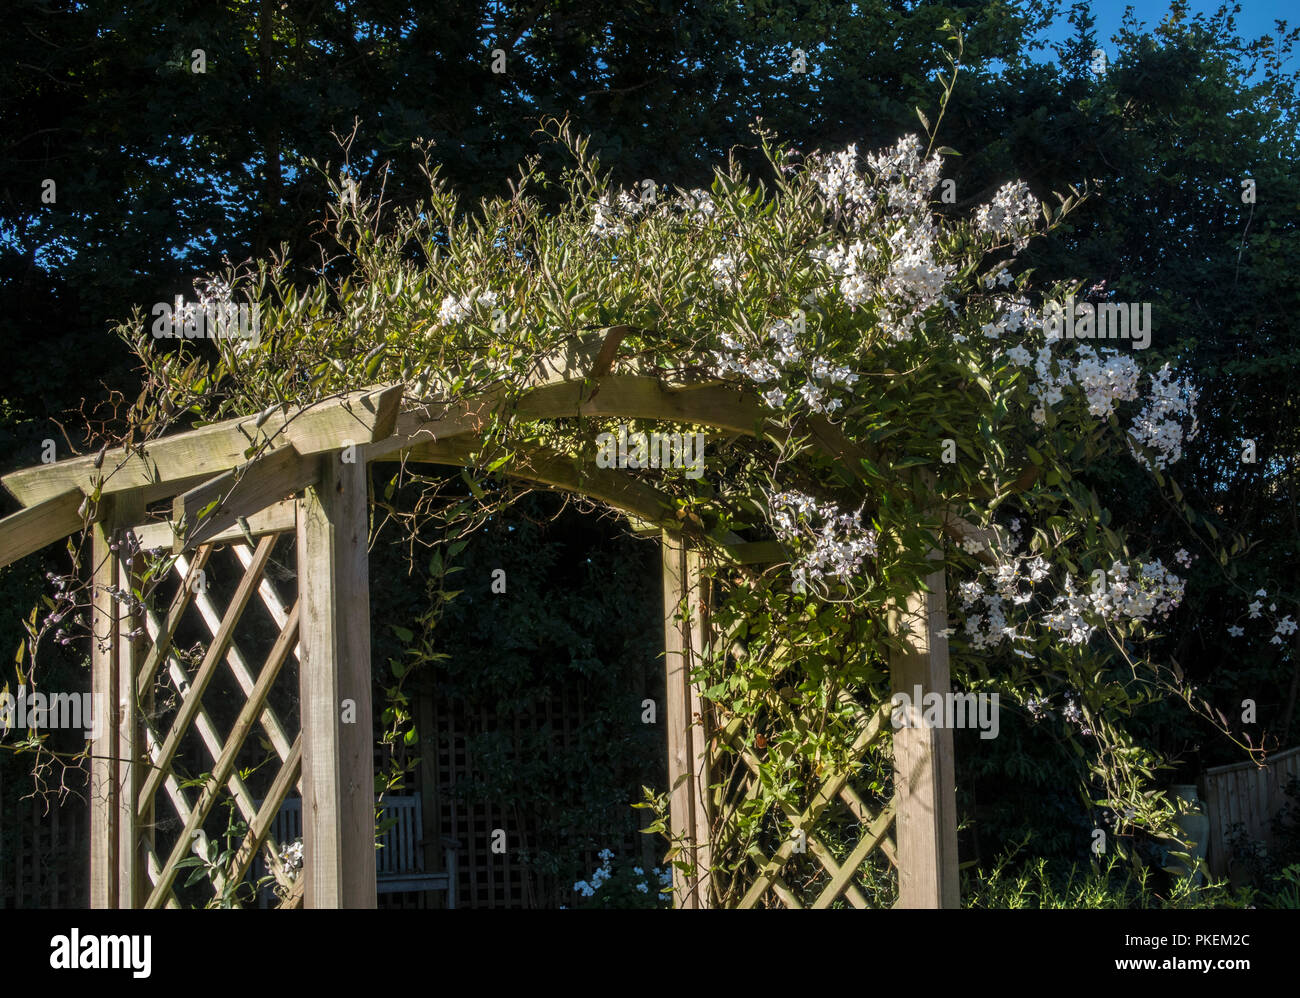 White jasmine flowers growing on a garden arch jasminum officinale white jasmine flowers growing on a garden arch jasminum officinale izmirmasajfo